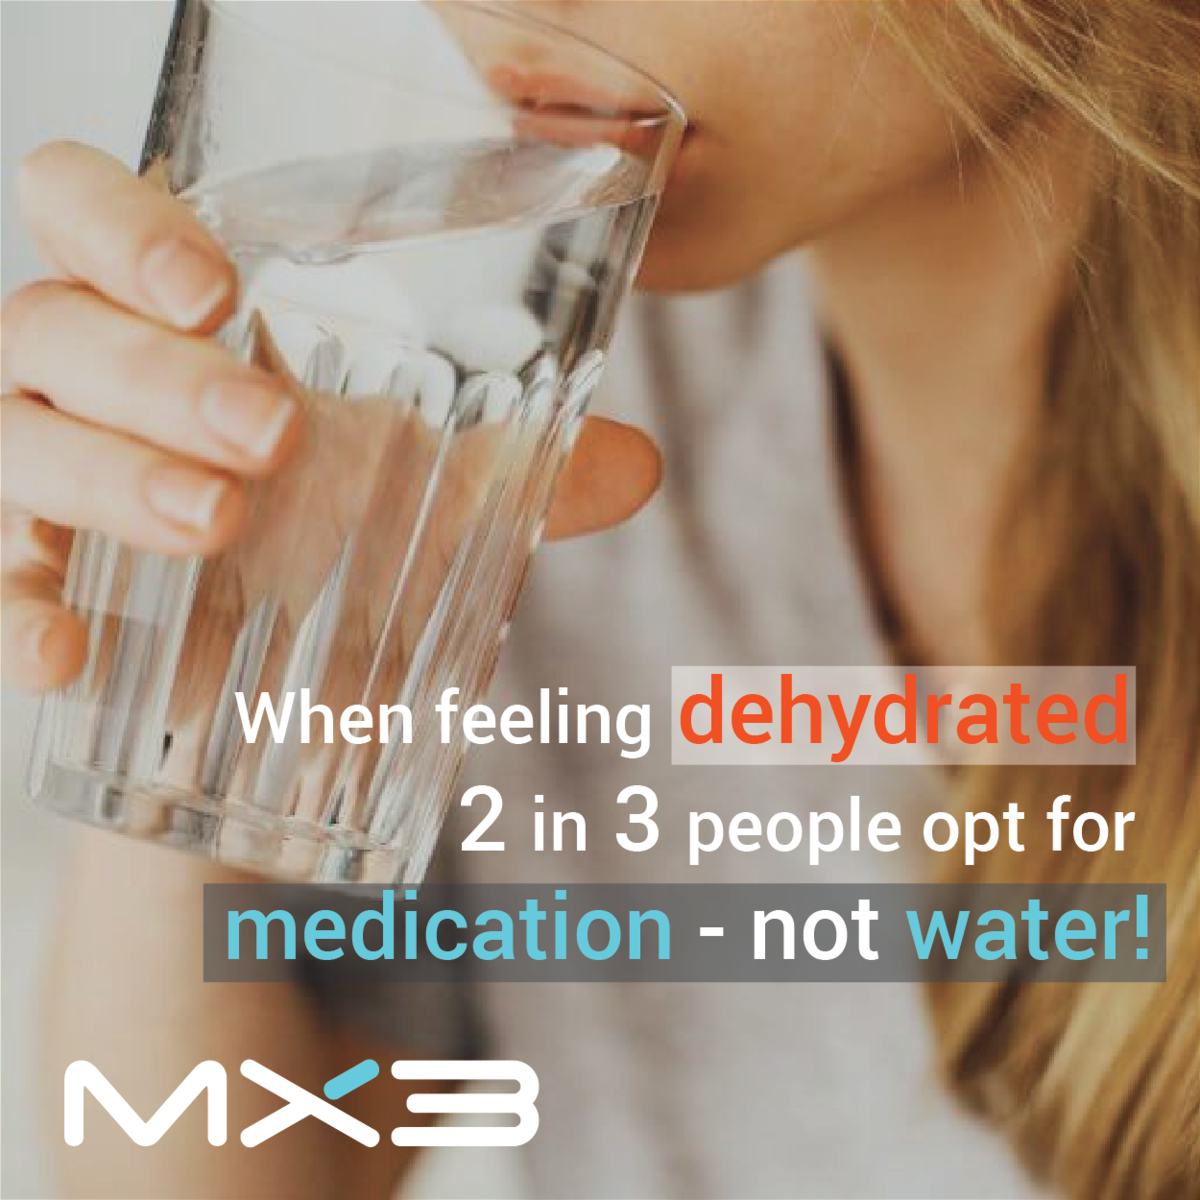 When feeling dehydrated, 2 in 3 people opt for medication